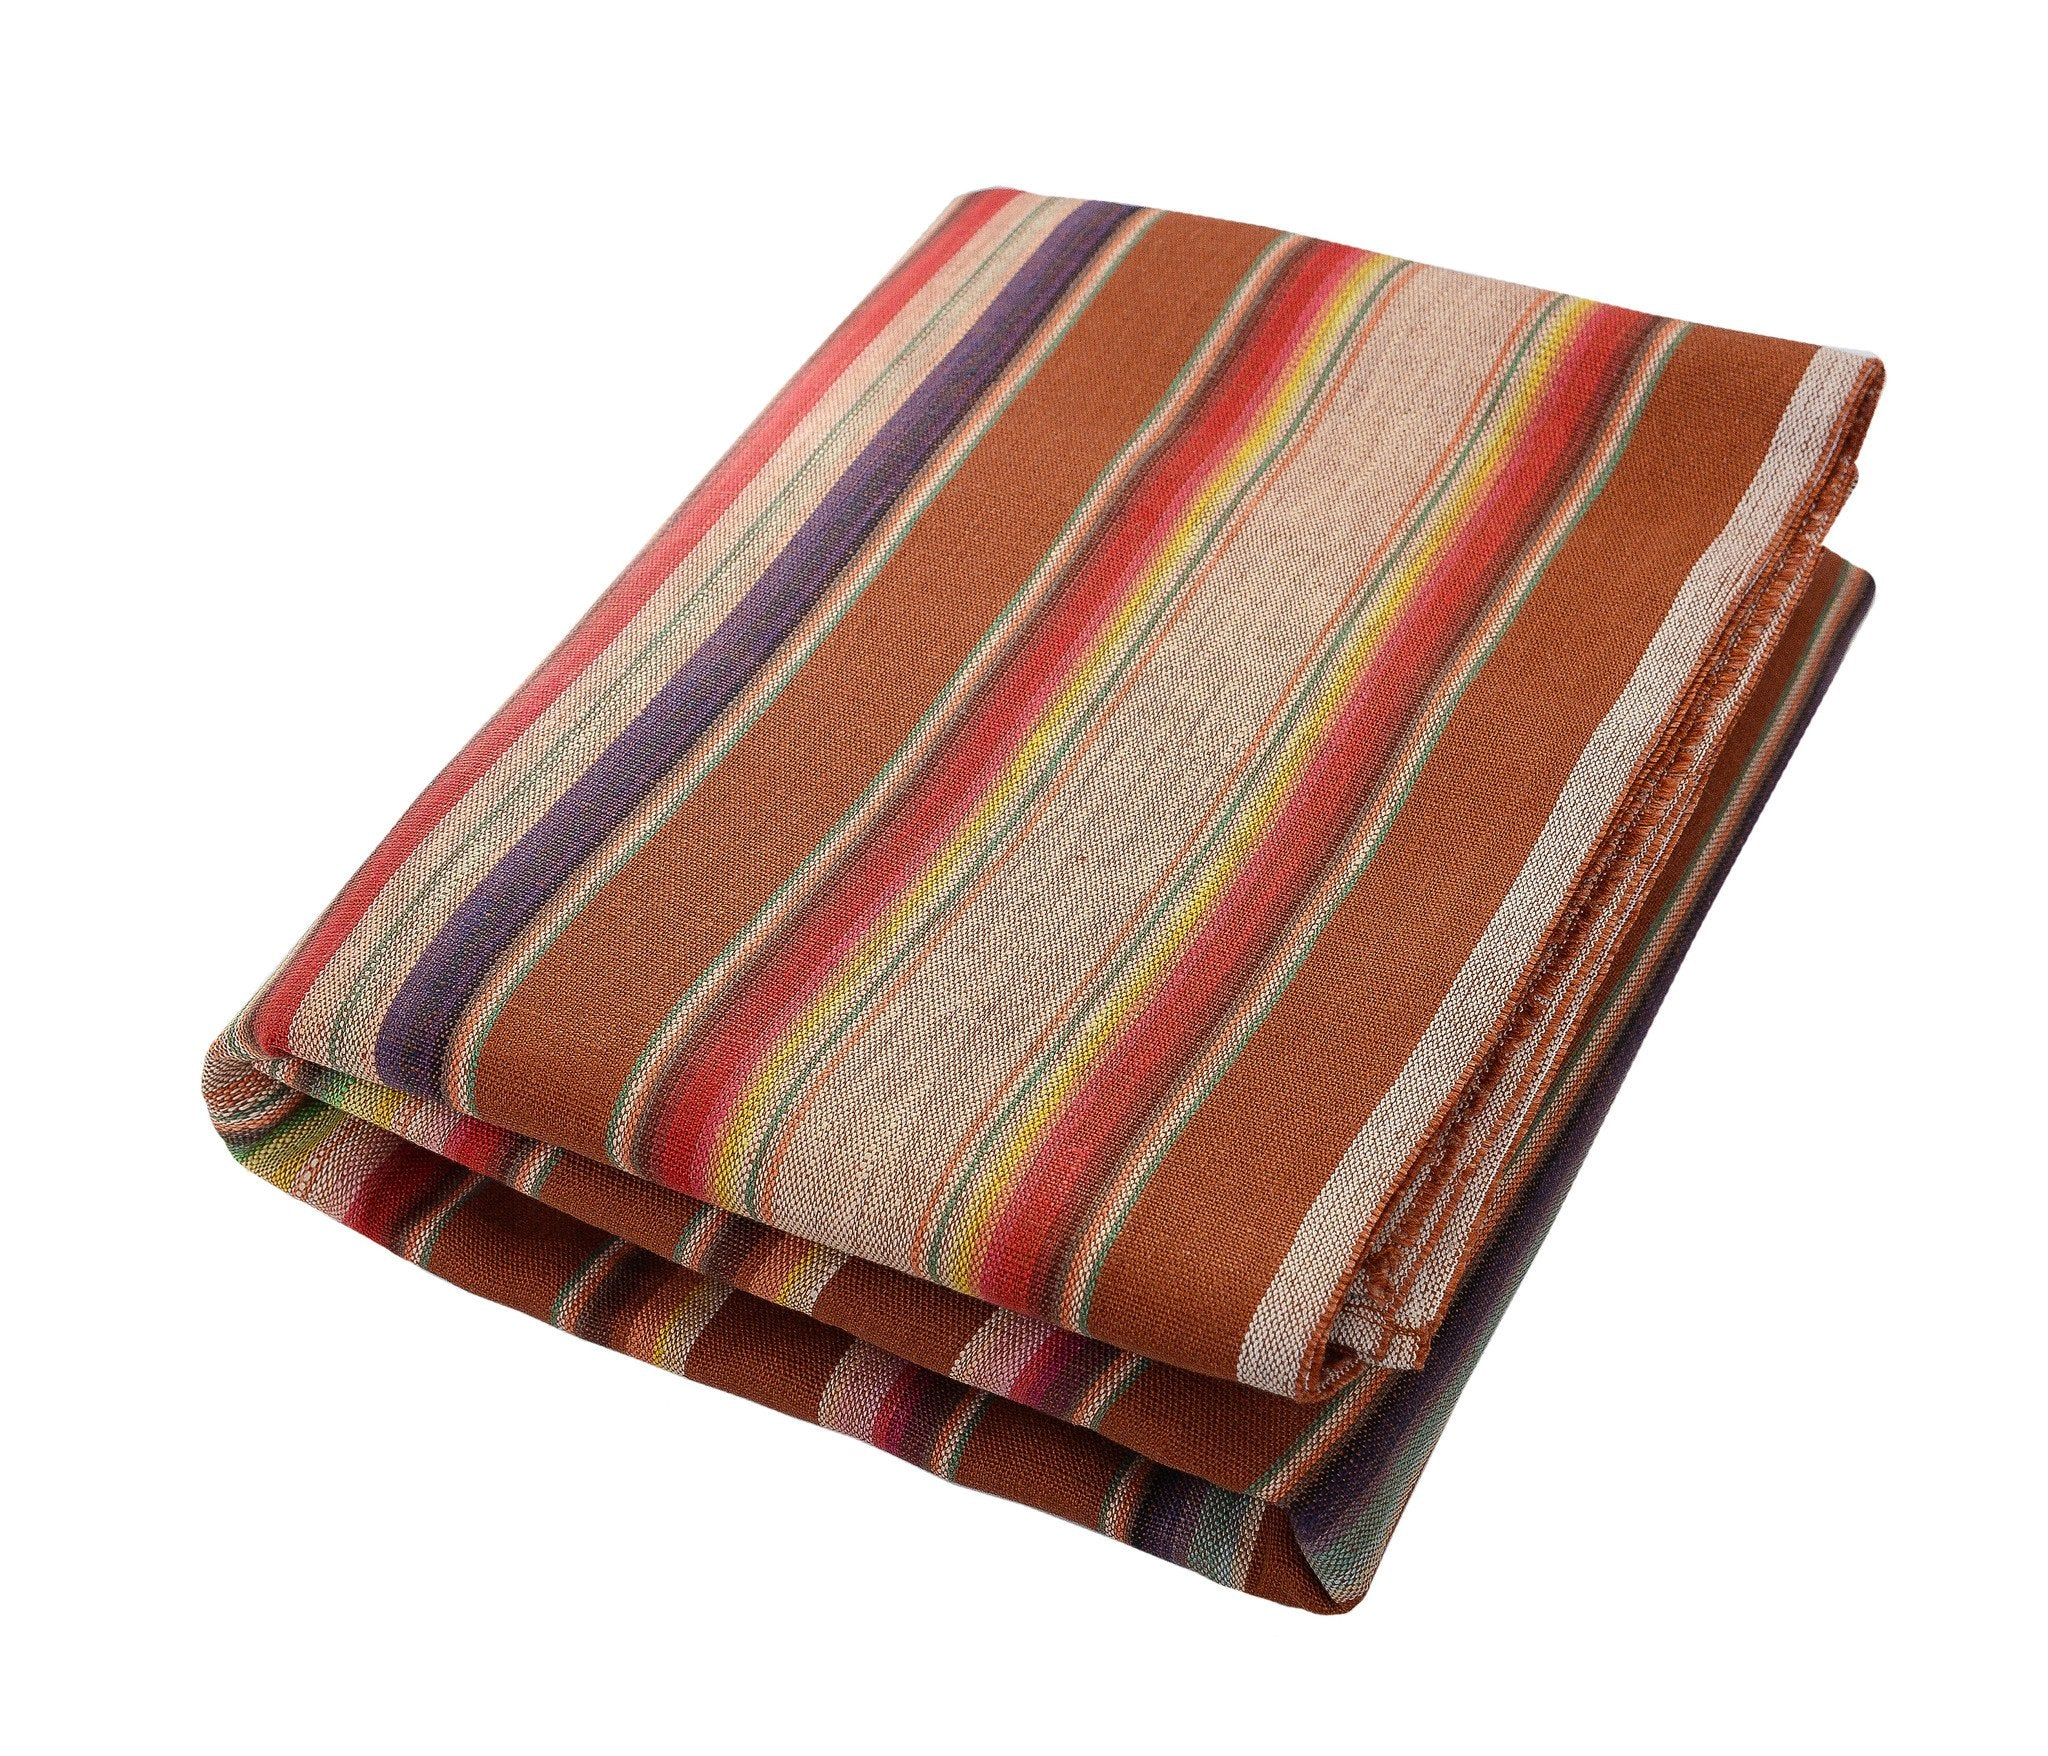 Theo:  Camel & Fourteen Multicolored Stripes, Linen Beach Towel - Deck Towel